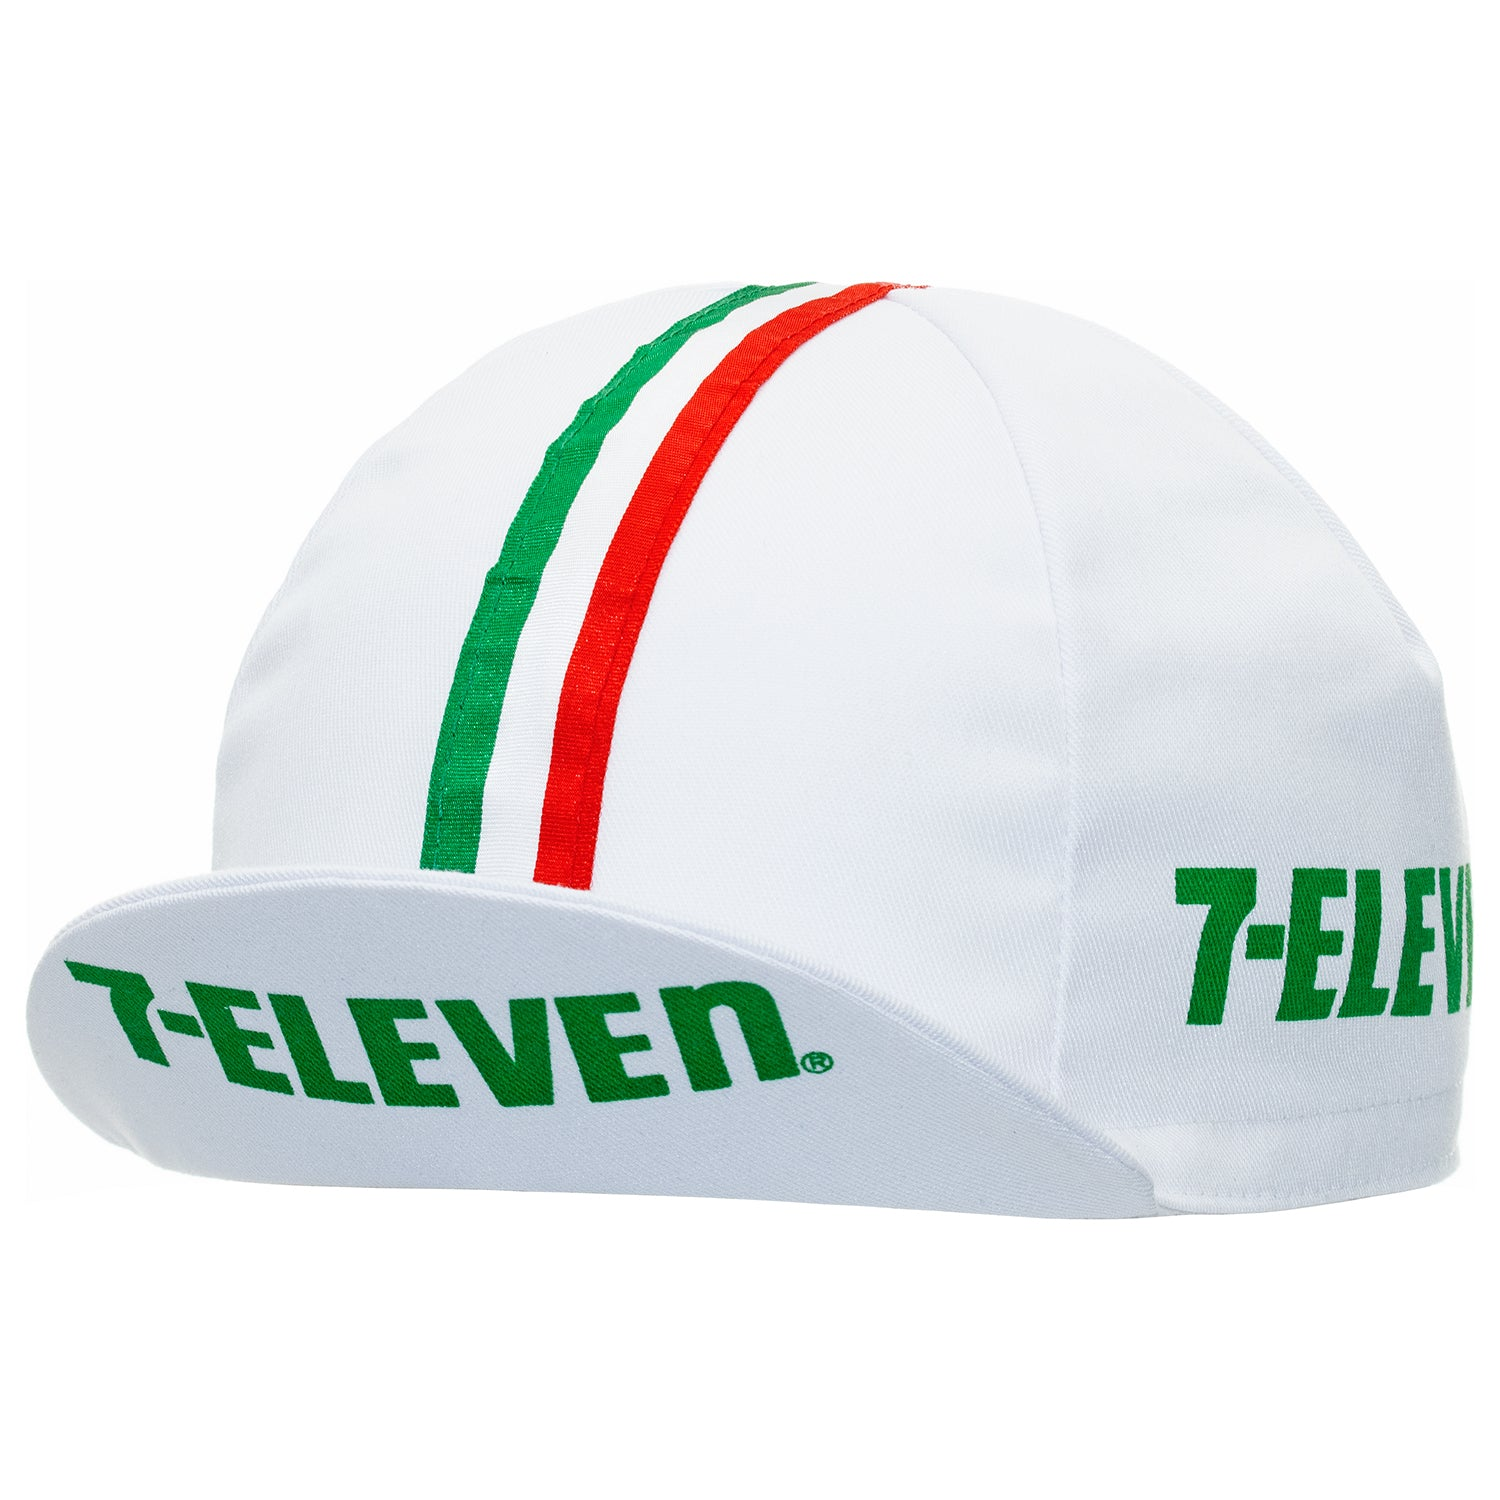 8512660fd 7-Eleven Retro Cotton Cycling Cap - Prendas Ciclismo